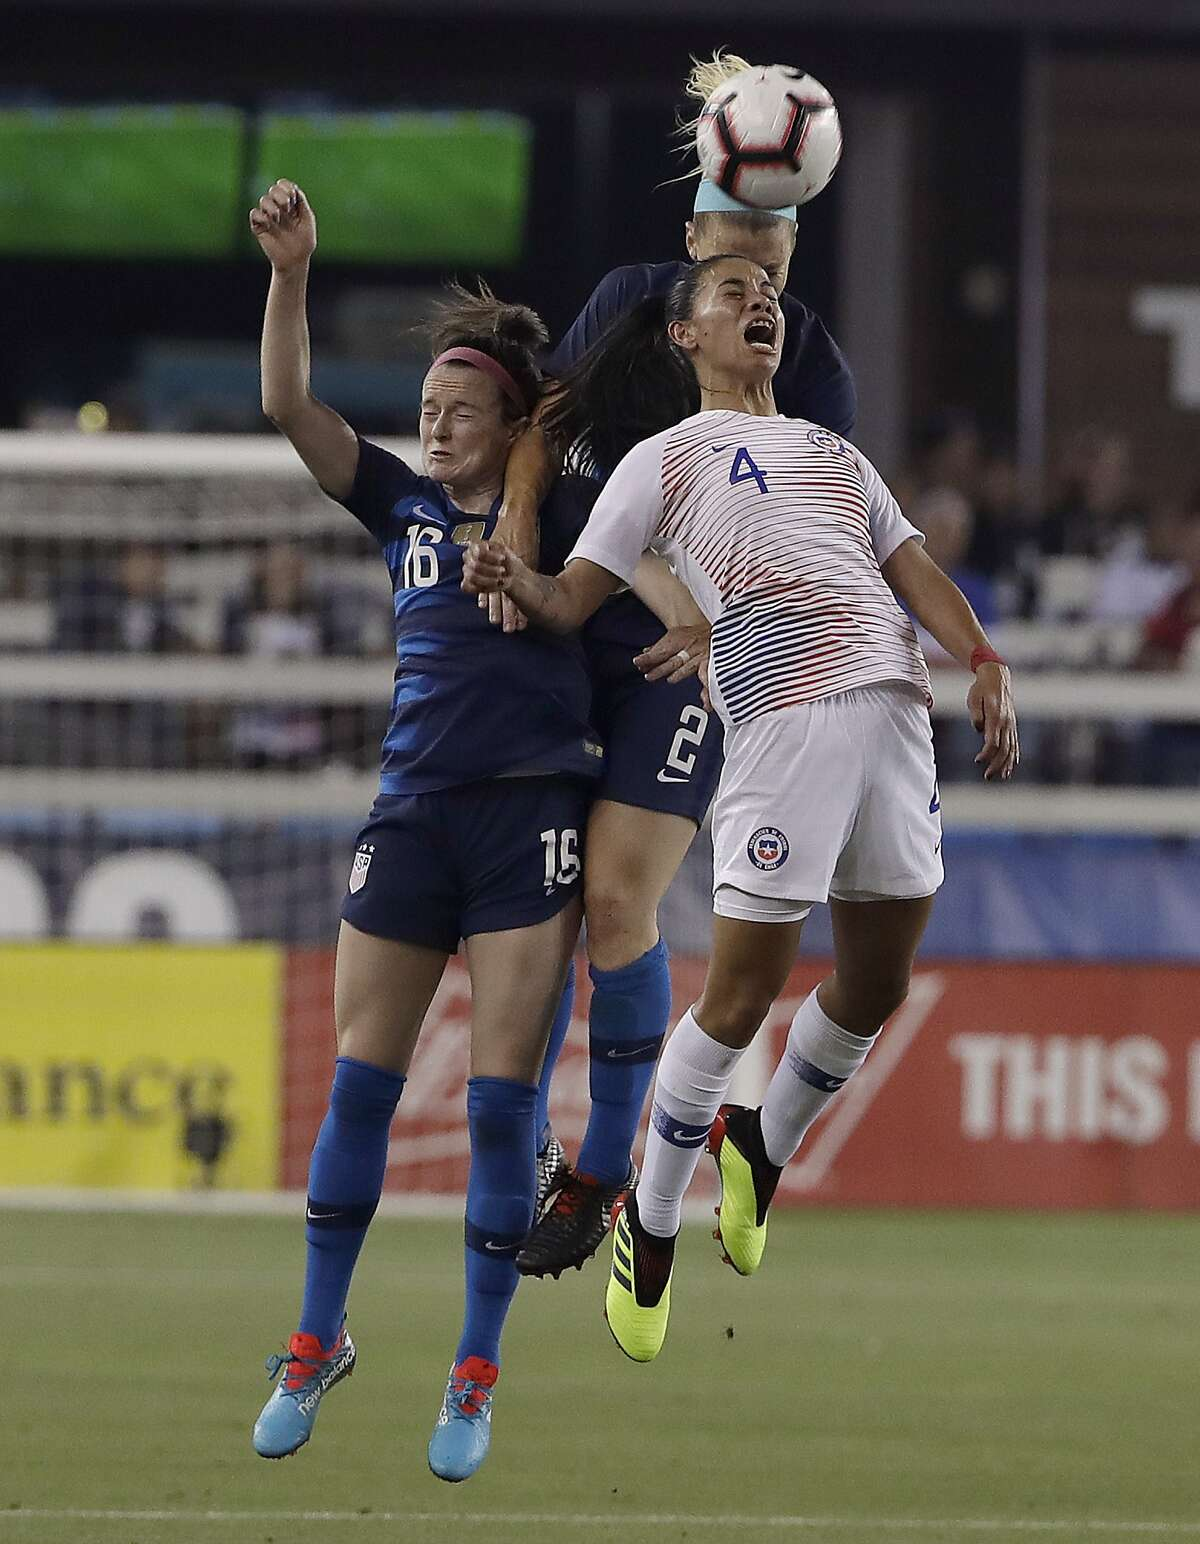 Chile's Francisca Lara (4) jumps for the ball in front of United States' Rose Lavelle, left, and Julie Ertz during the first half of an international friendly soccer match in San Jose, Calif., Tuesday, Sept. 4, 2018. (AP Photo/Jeff Chiu)